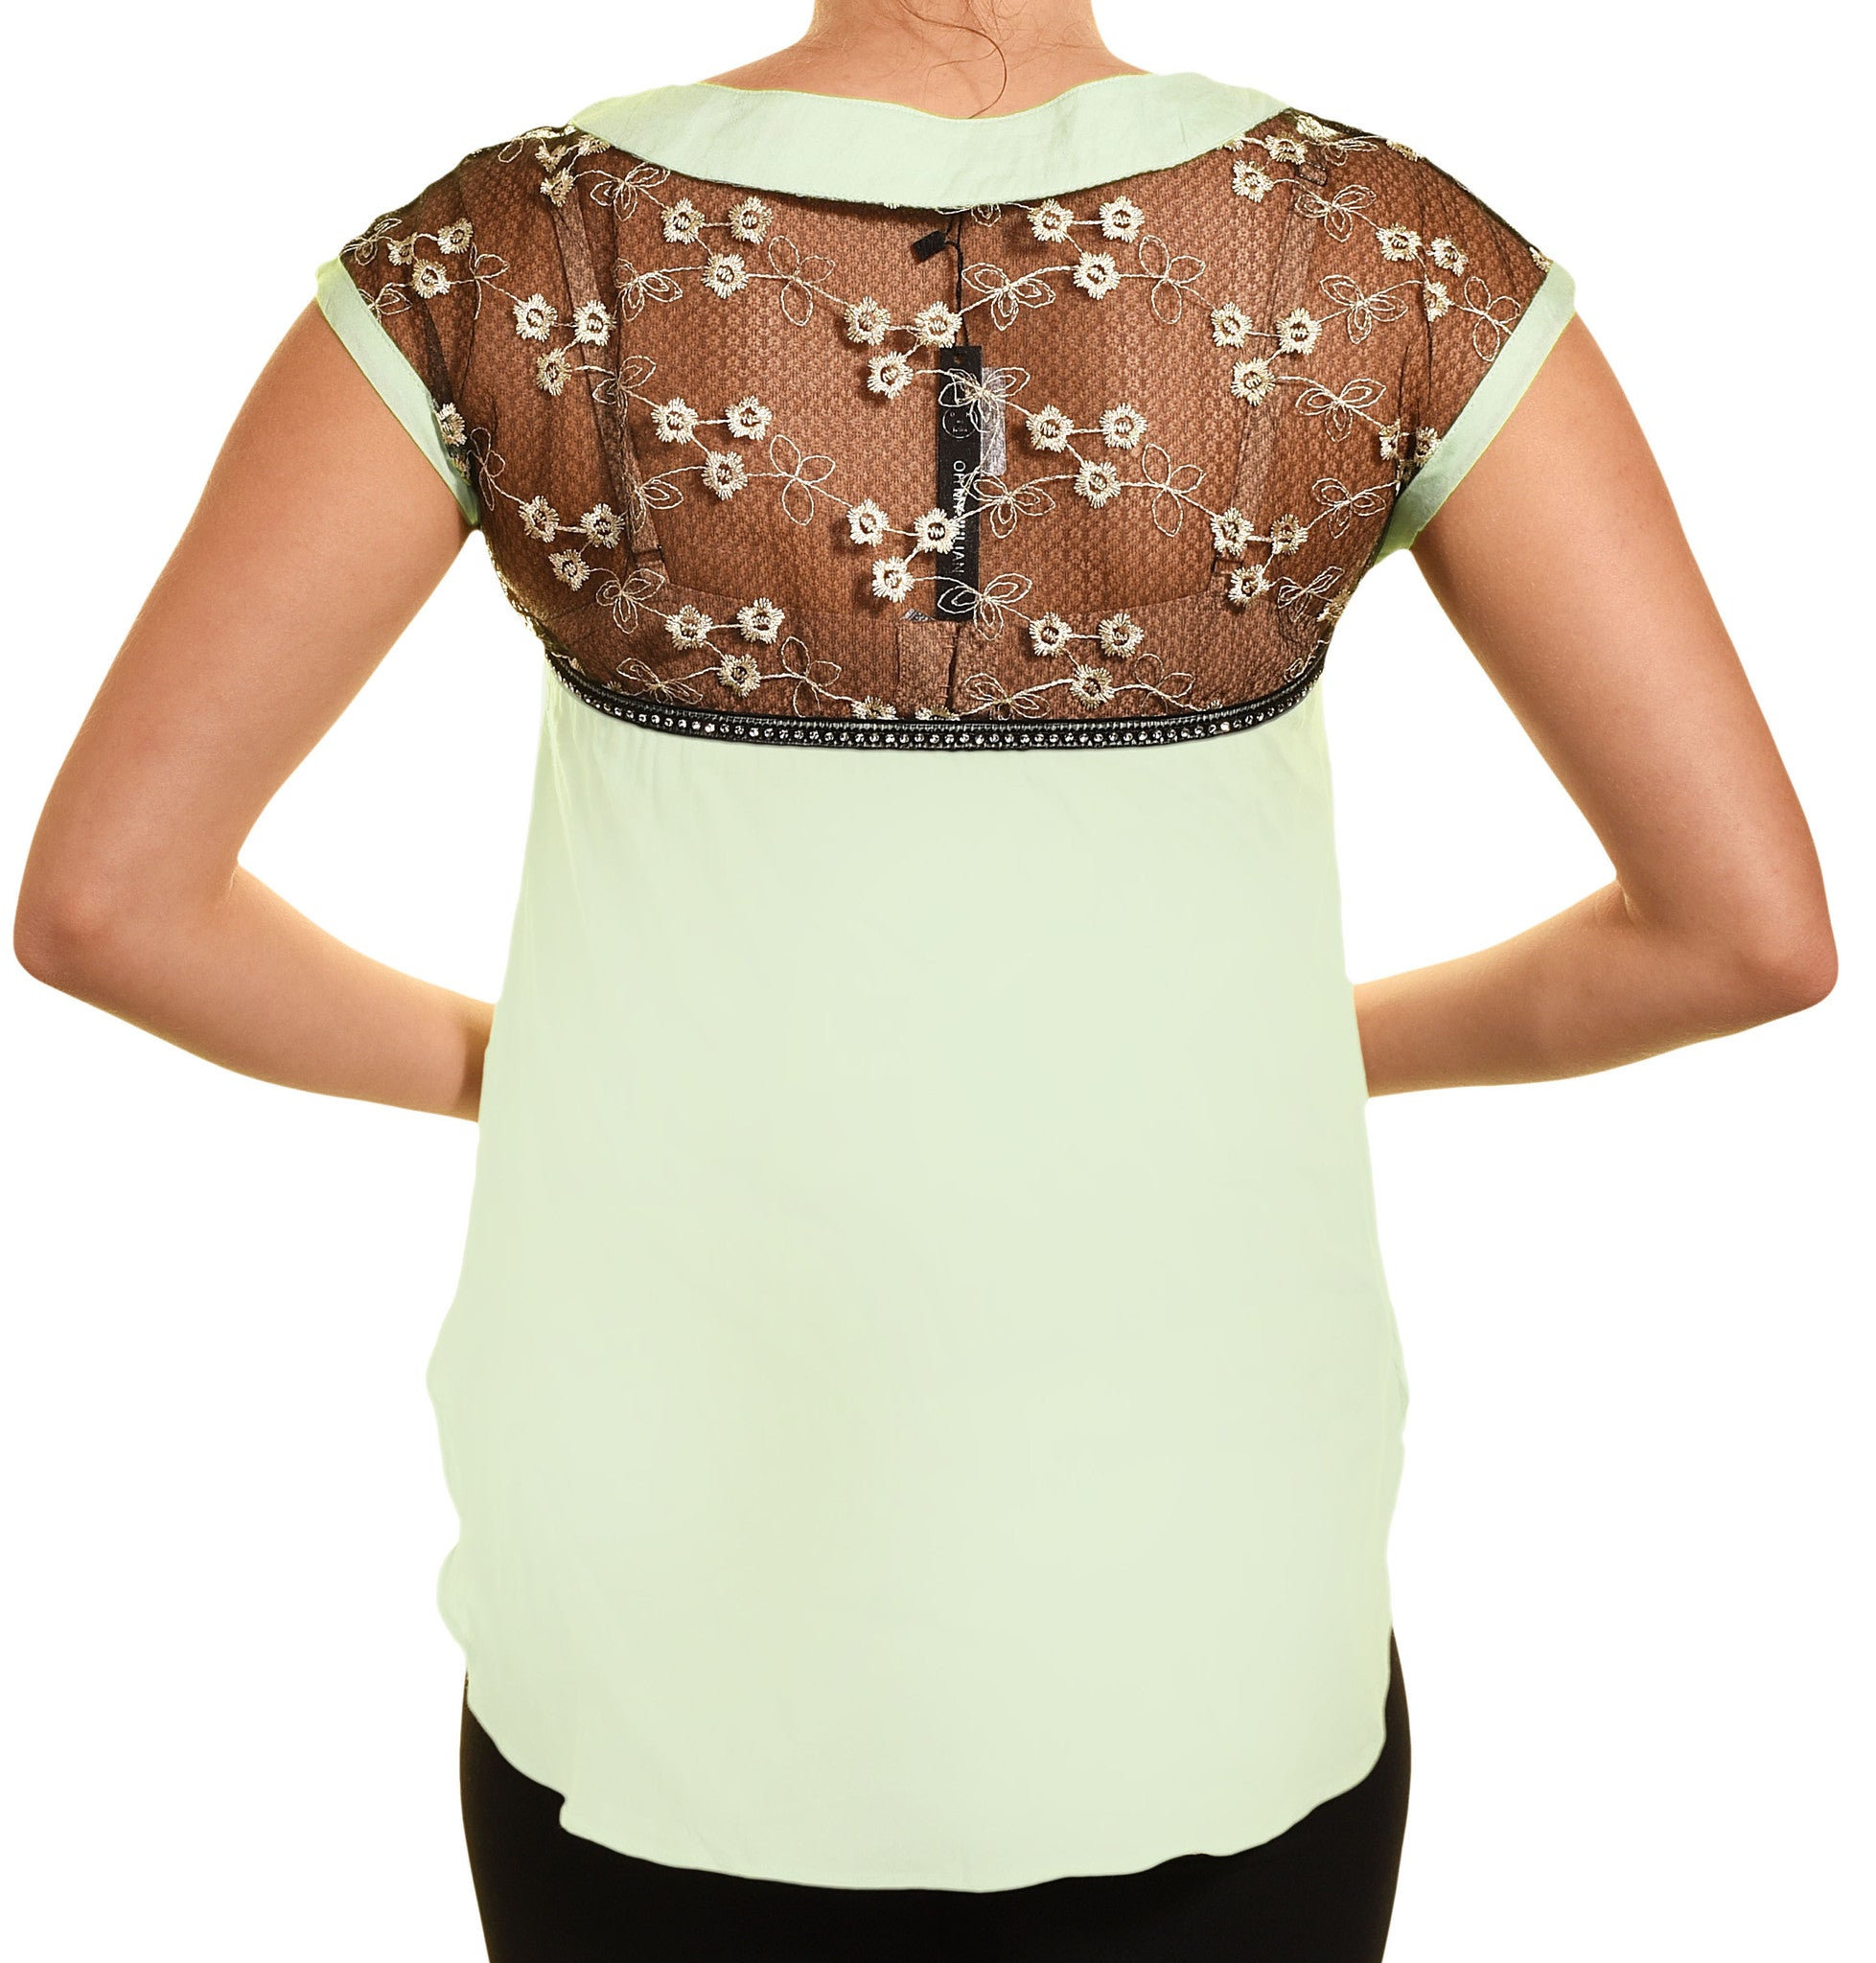 Embroidered Lace Rhinestone Tank Top